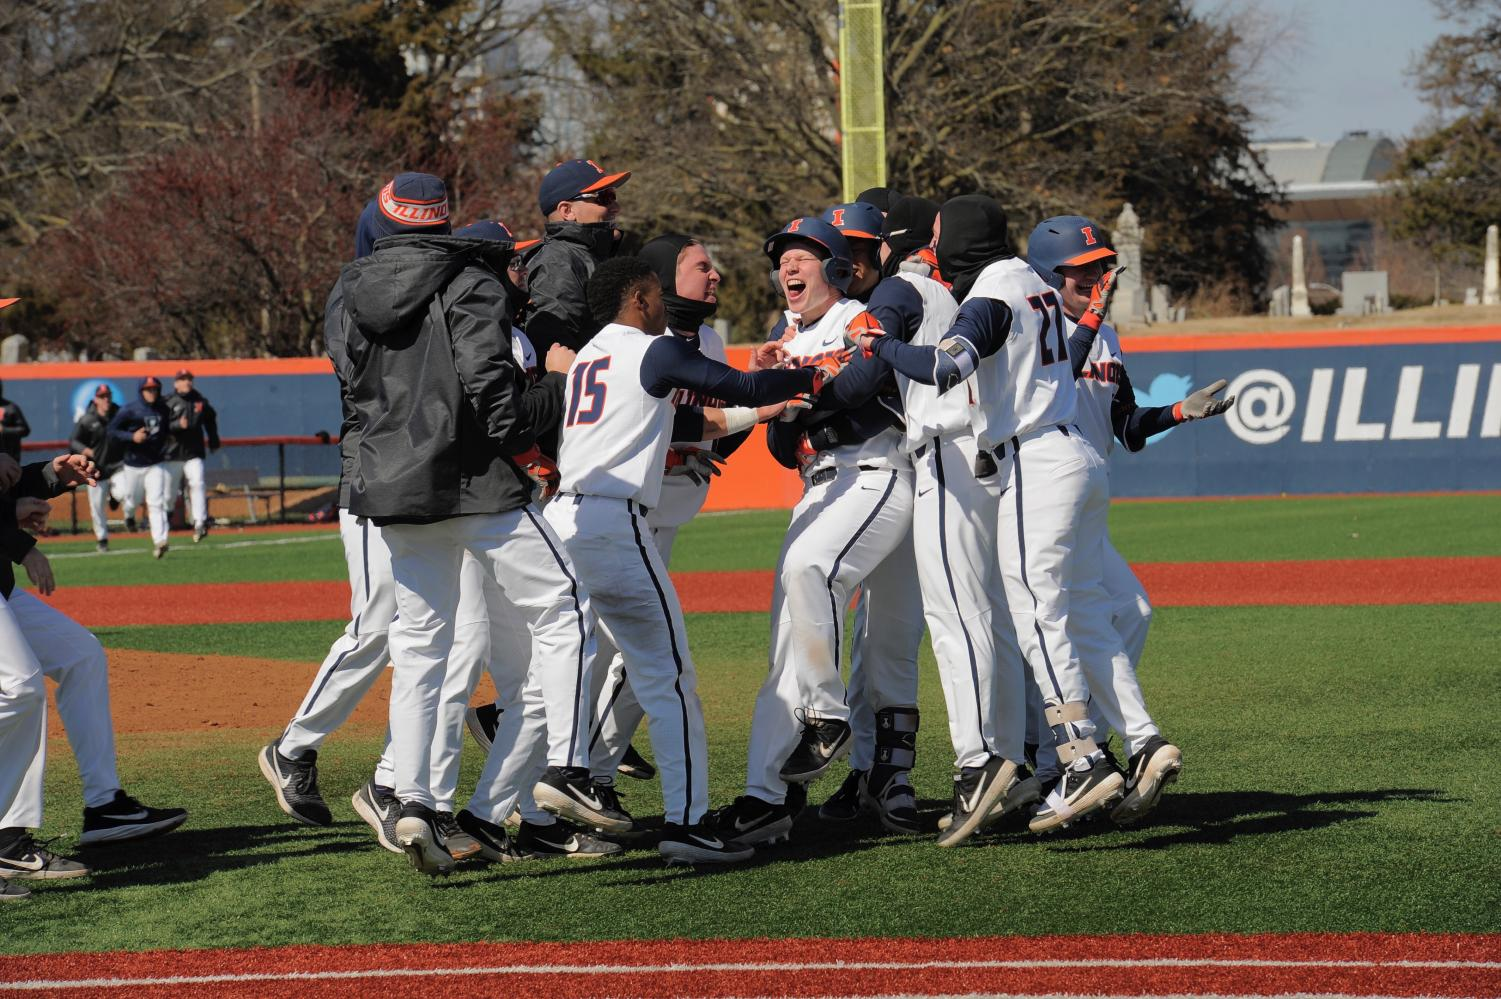 The Illini celebrate their 3-0 victory over Southern Illinois at Illinois Field on Sunday. The team's current 13-3 record is the best 16-game season start since 1989.